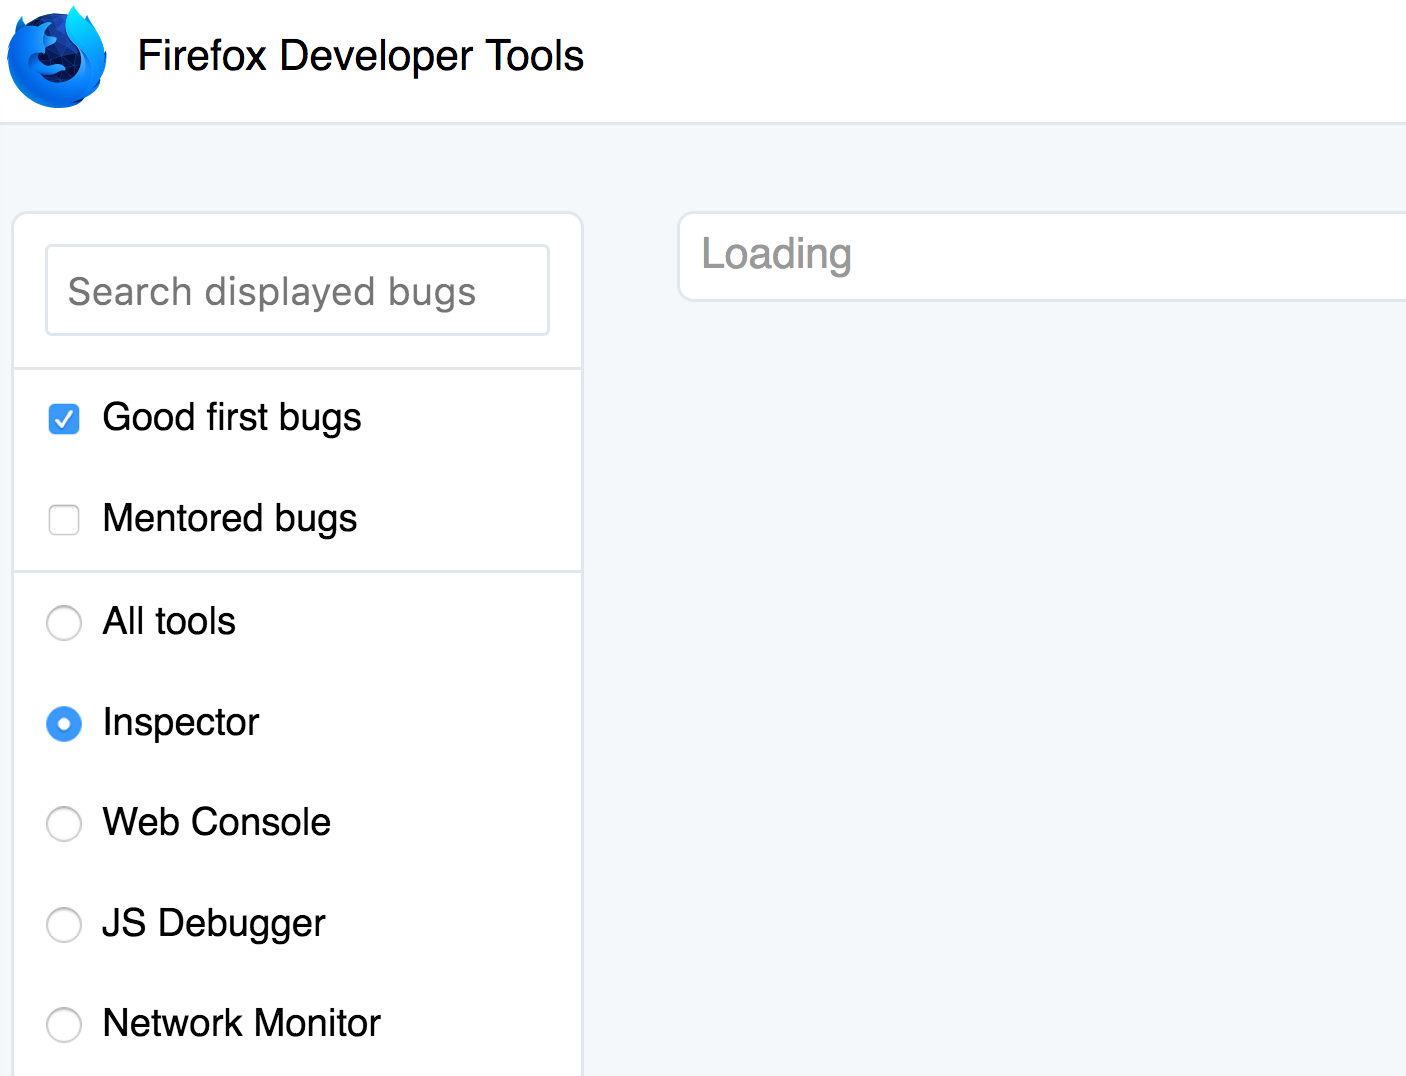 A tour with Firefox DevTools